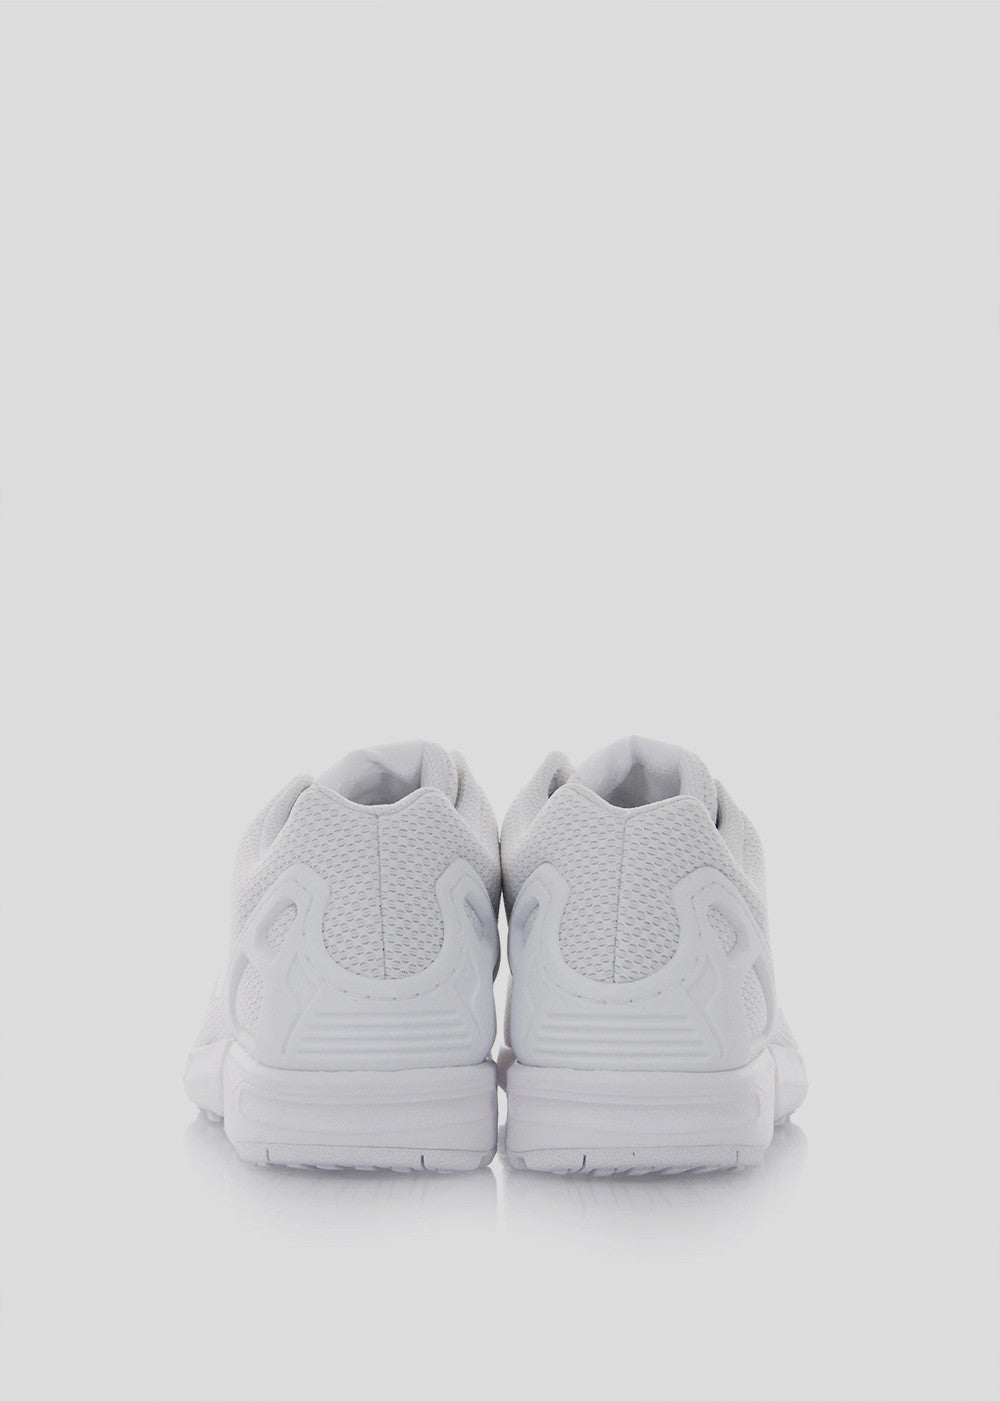 ZX Flux Shoes White/White